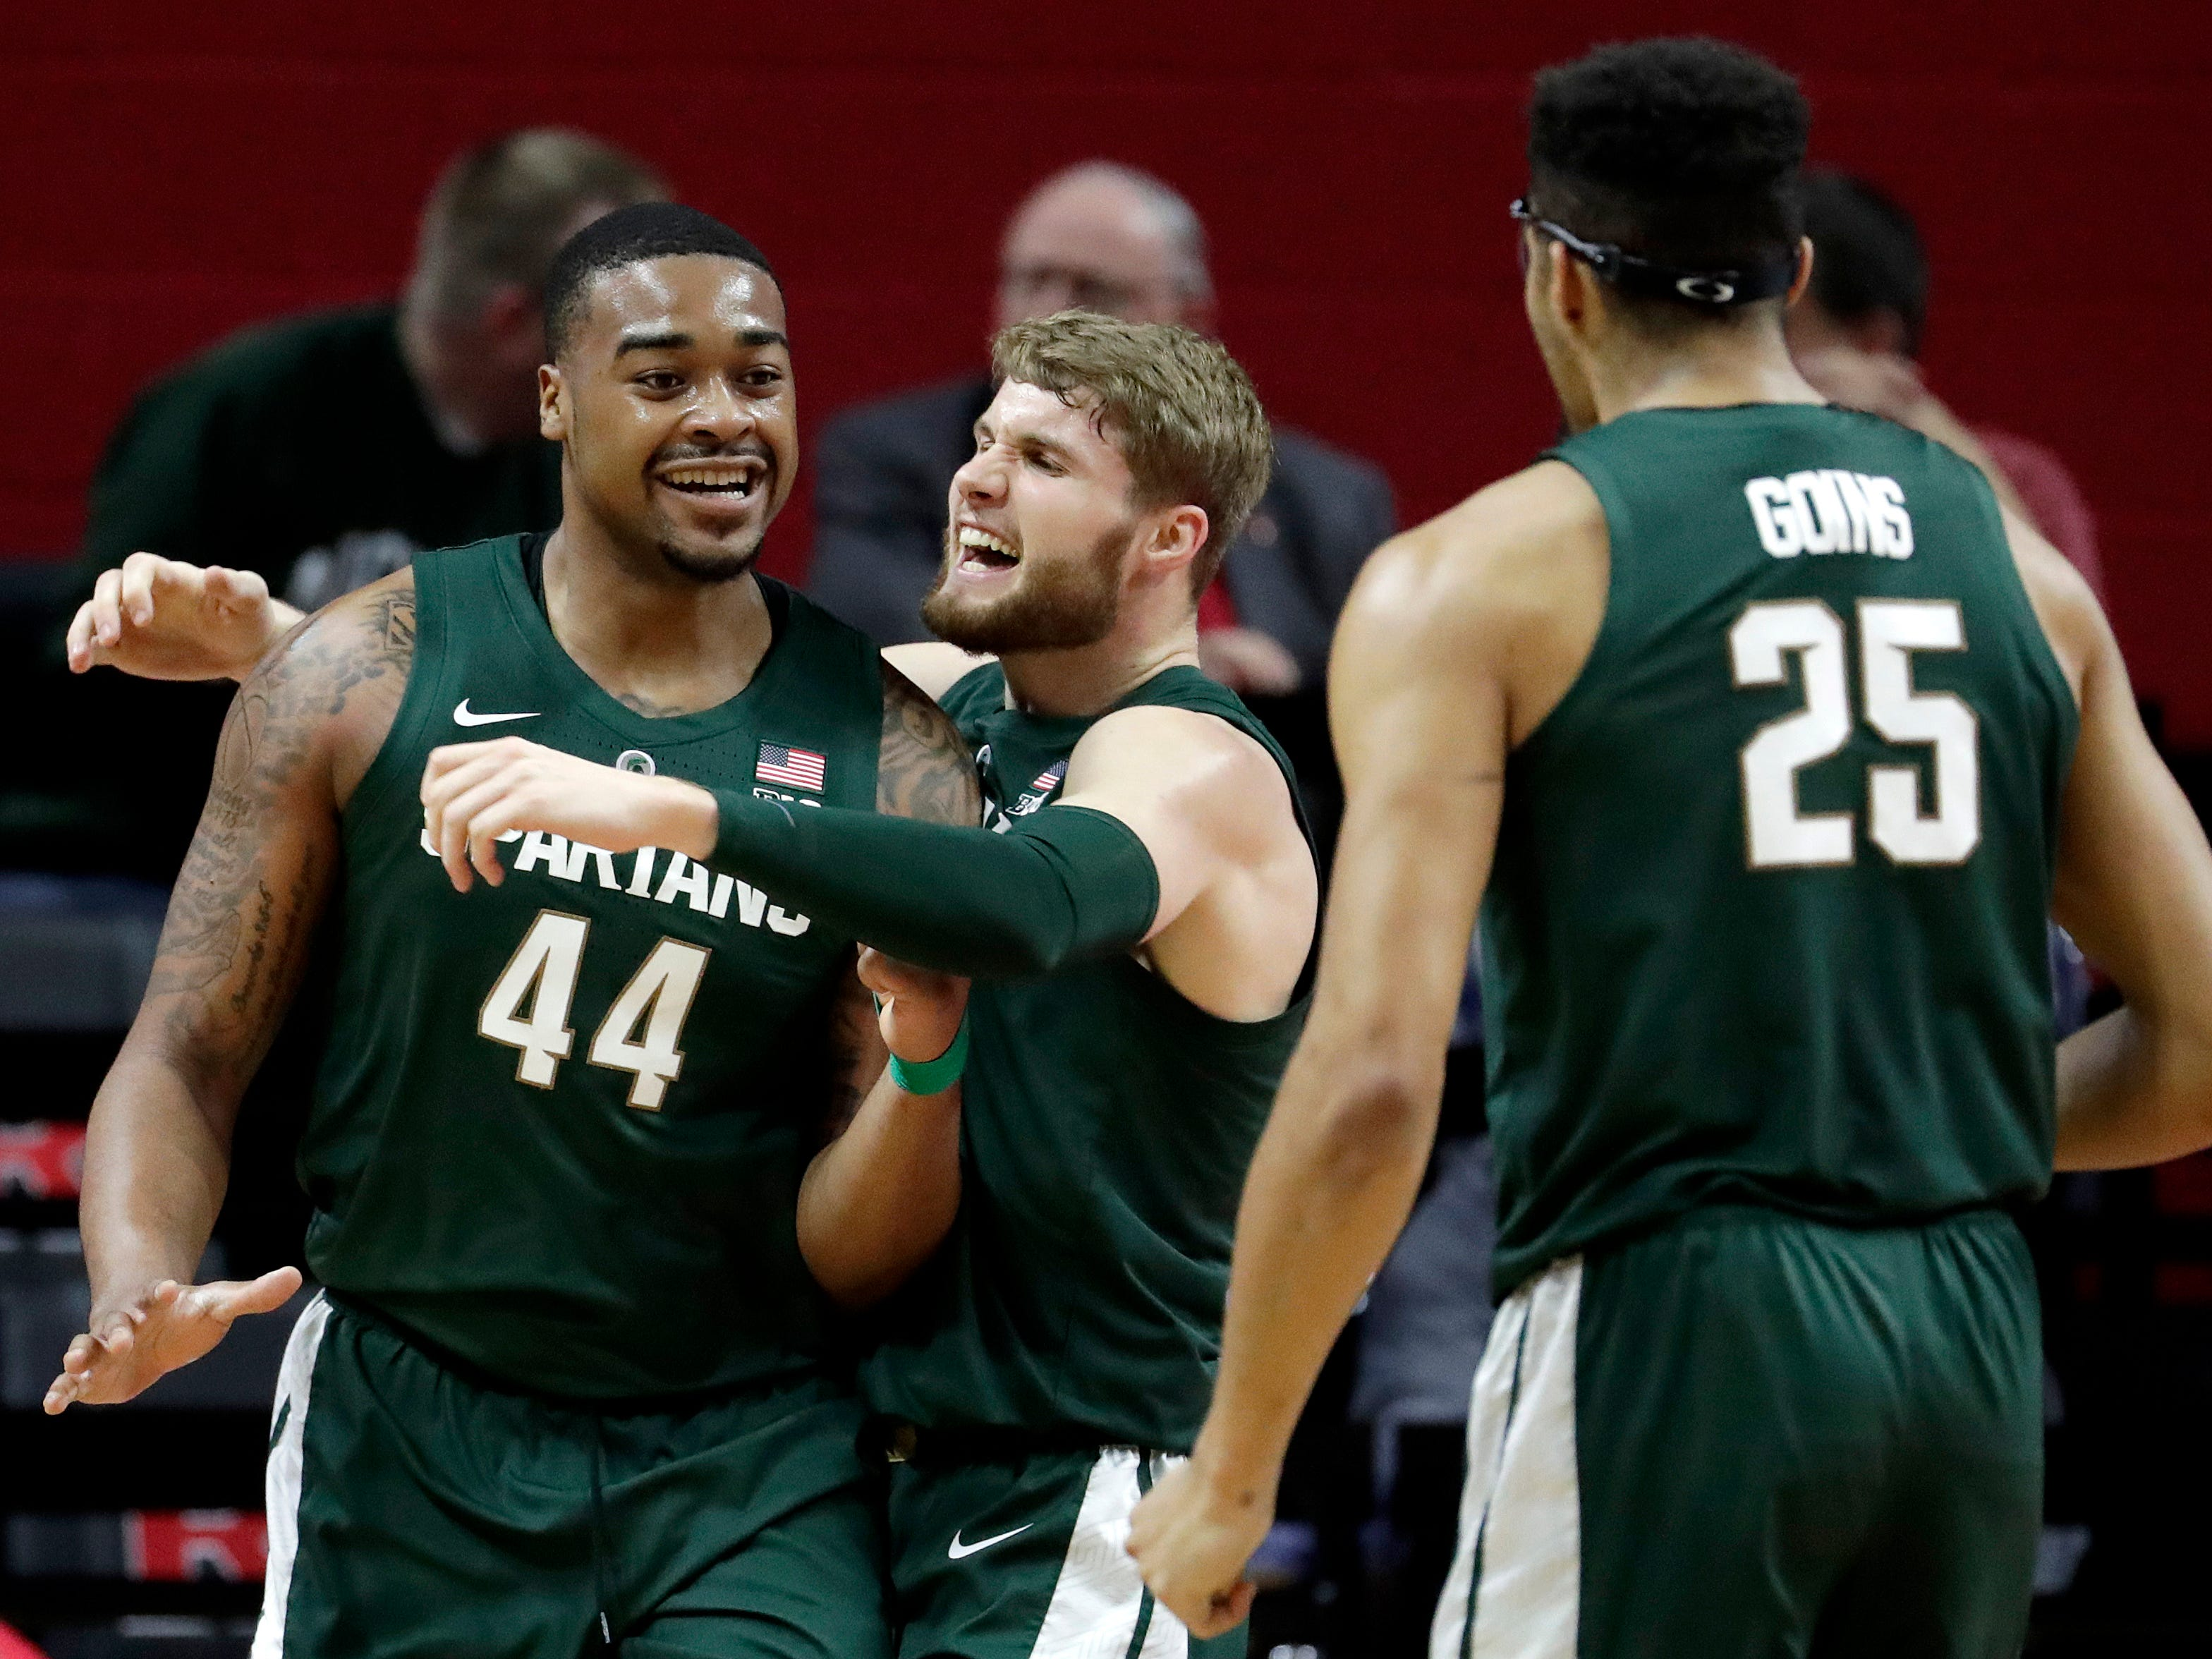 Michigan State forward Nick Ward (44) is hugged by Kyle Ahrens after scoring a basket against Rutgers during the first half of an NCAA college basketball game, Friday, Nov. 30, 2018, in Piscataway, N.J.